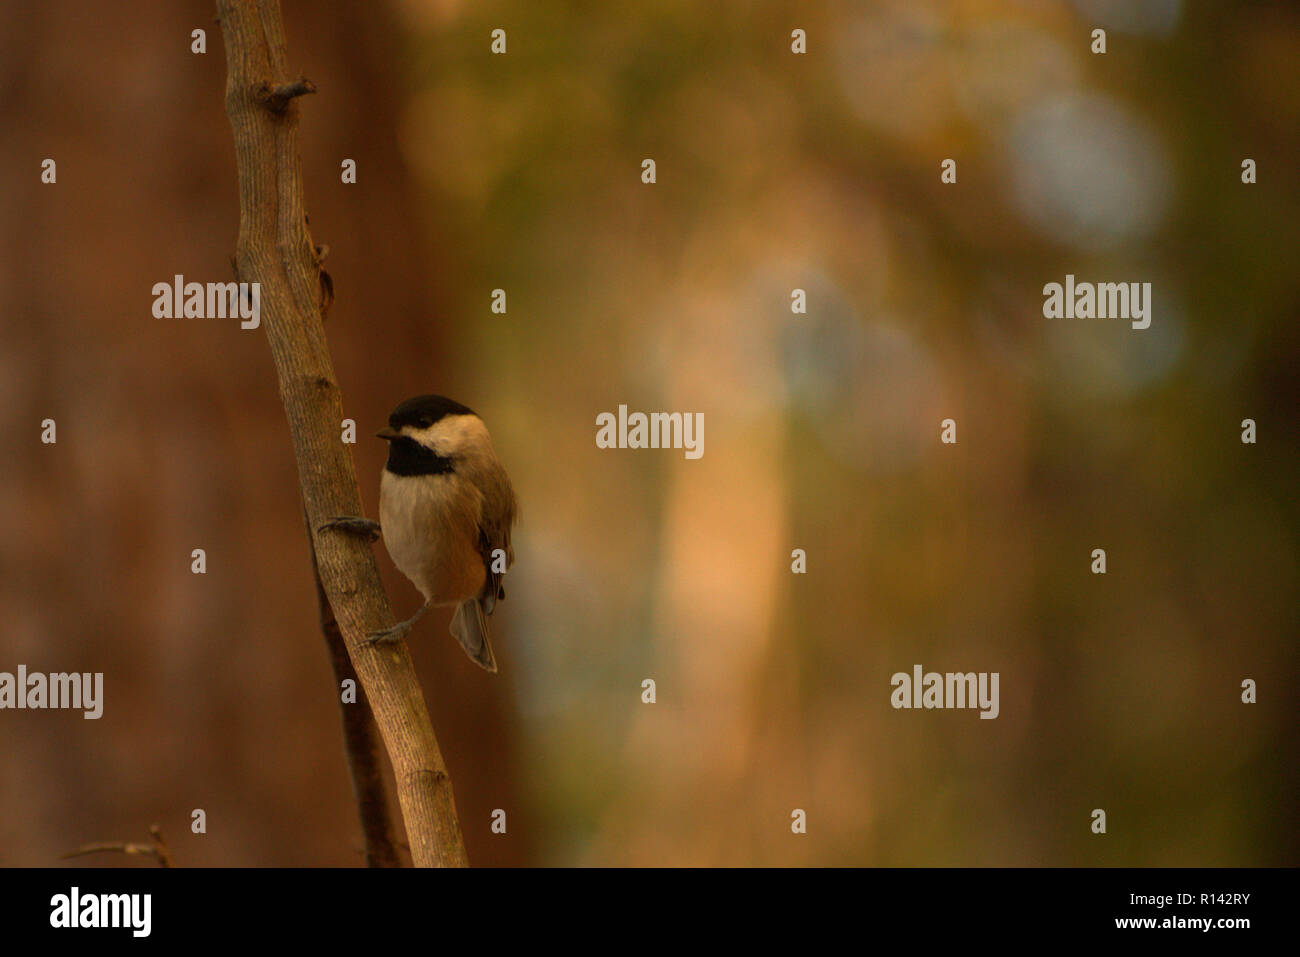 Carolina Chickadee sitting on a hanging vine in the woods in profile (Poecile carolinensis) - Stock Image